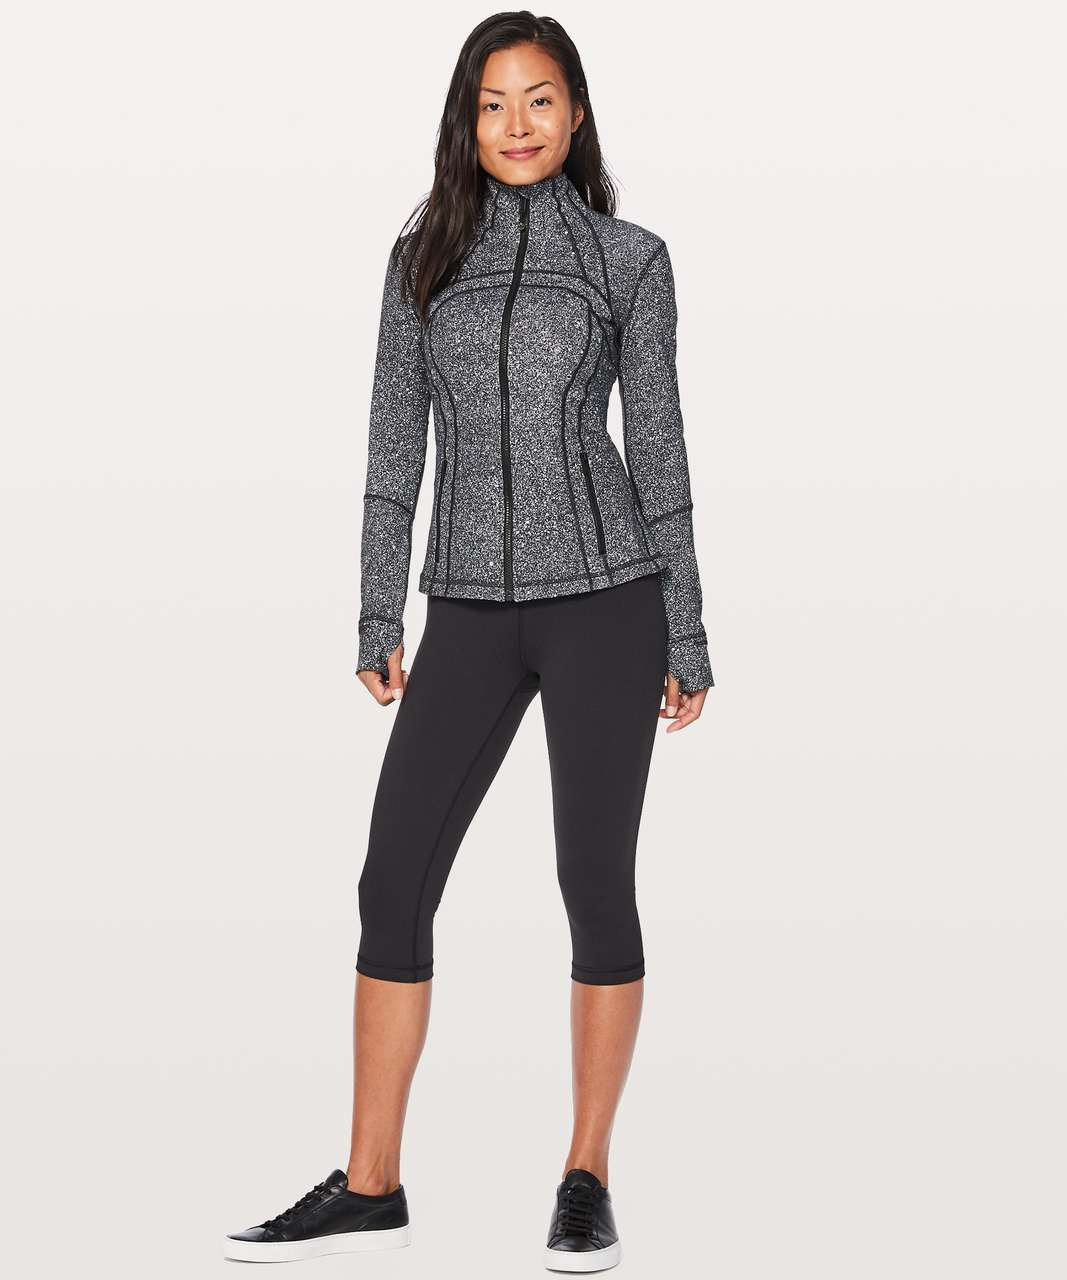 Lululemon Define Jacket - Luminesce Splatter White Black